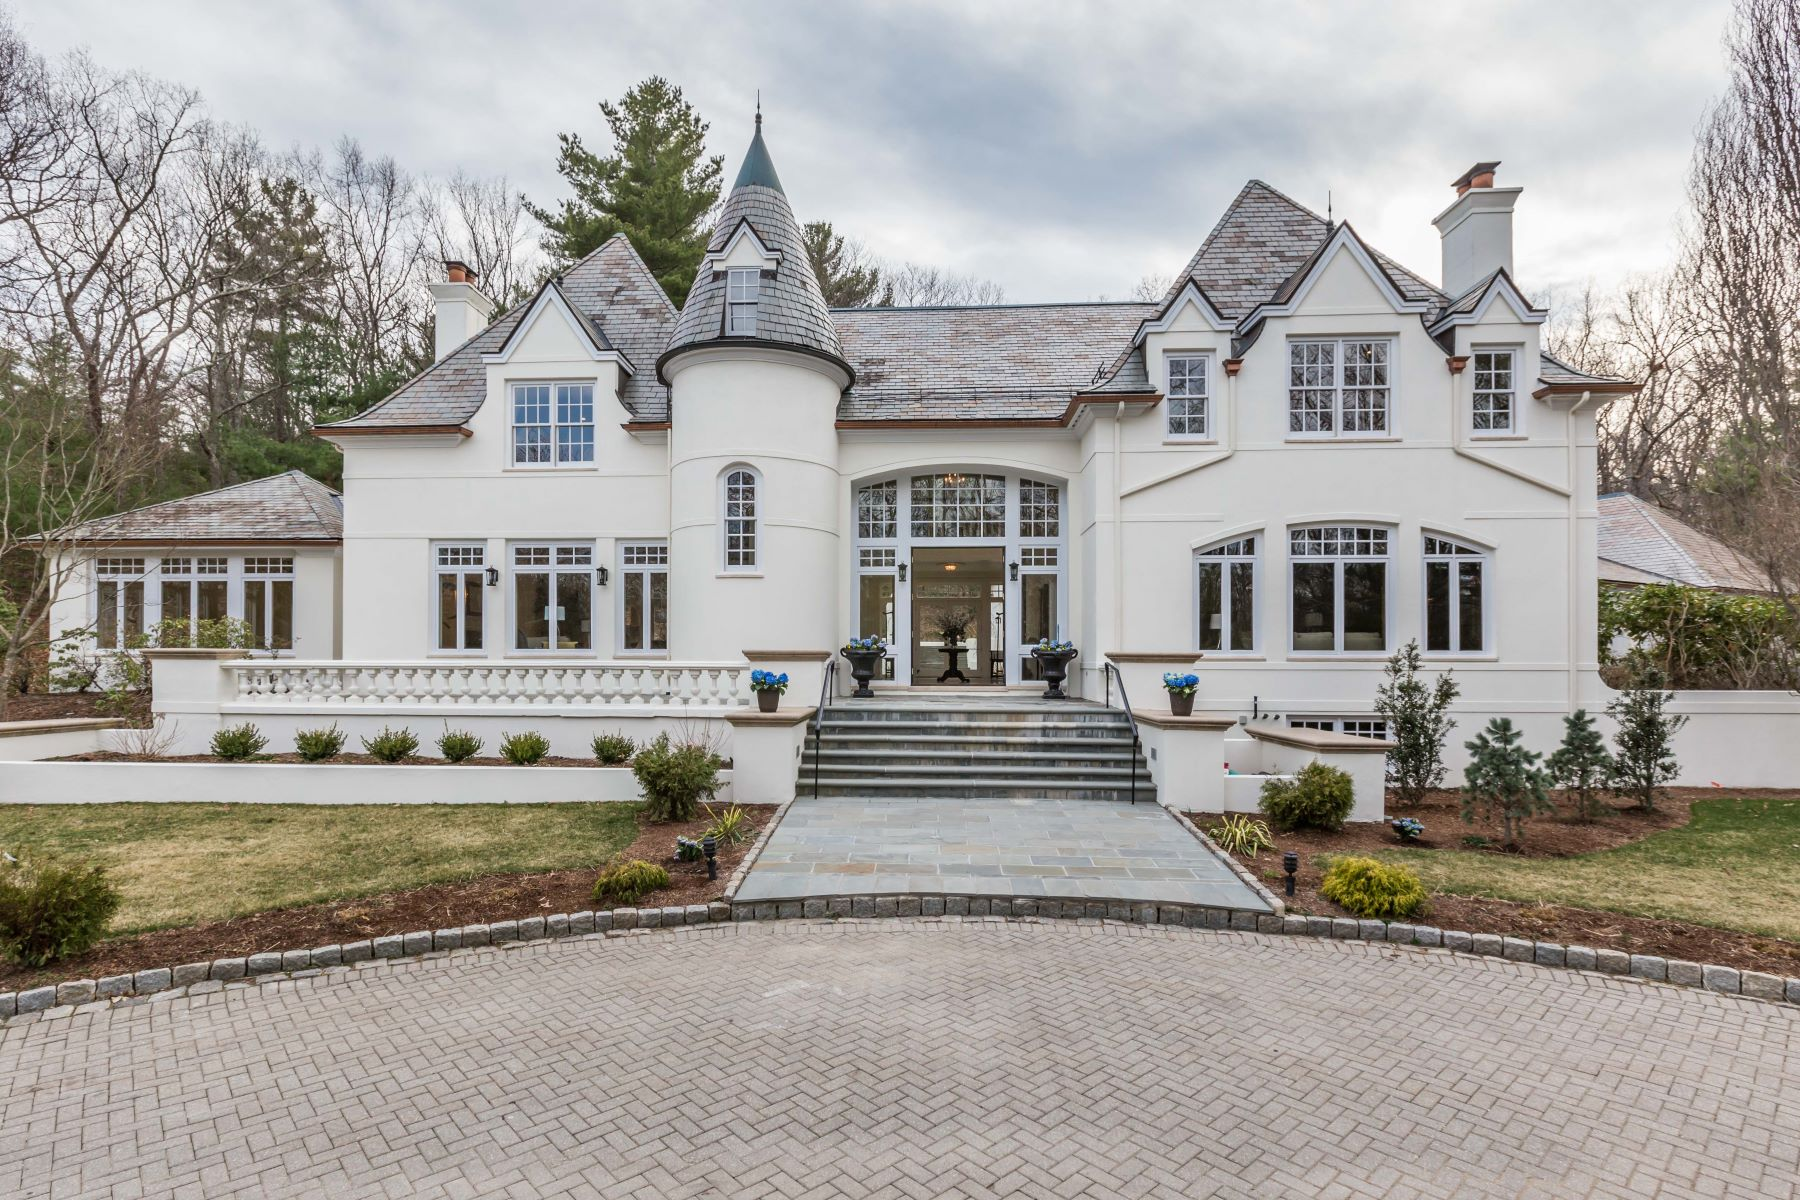 Single Family Home for Sale at Stunning Newly Renovated Wellesley Estate 190 Pond Road Wellesley, Massachusetts, 02482 United States